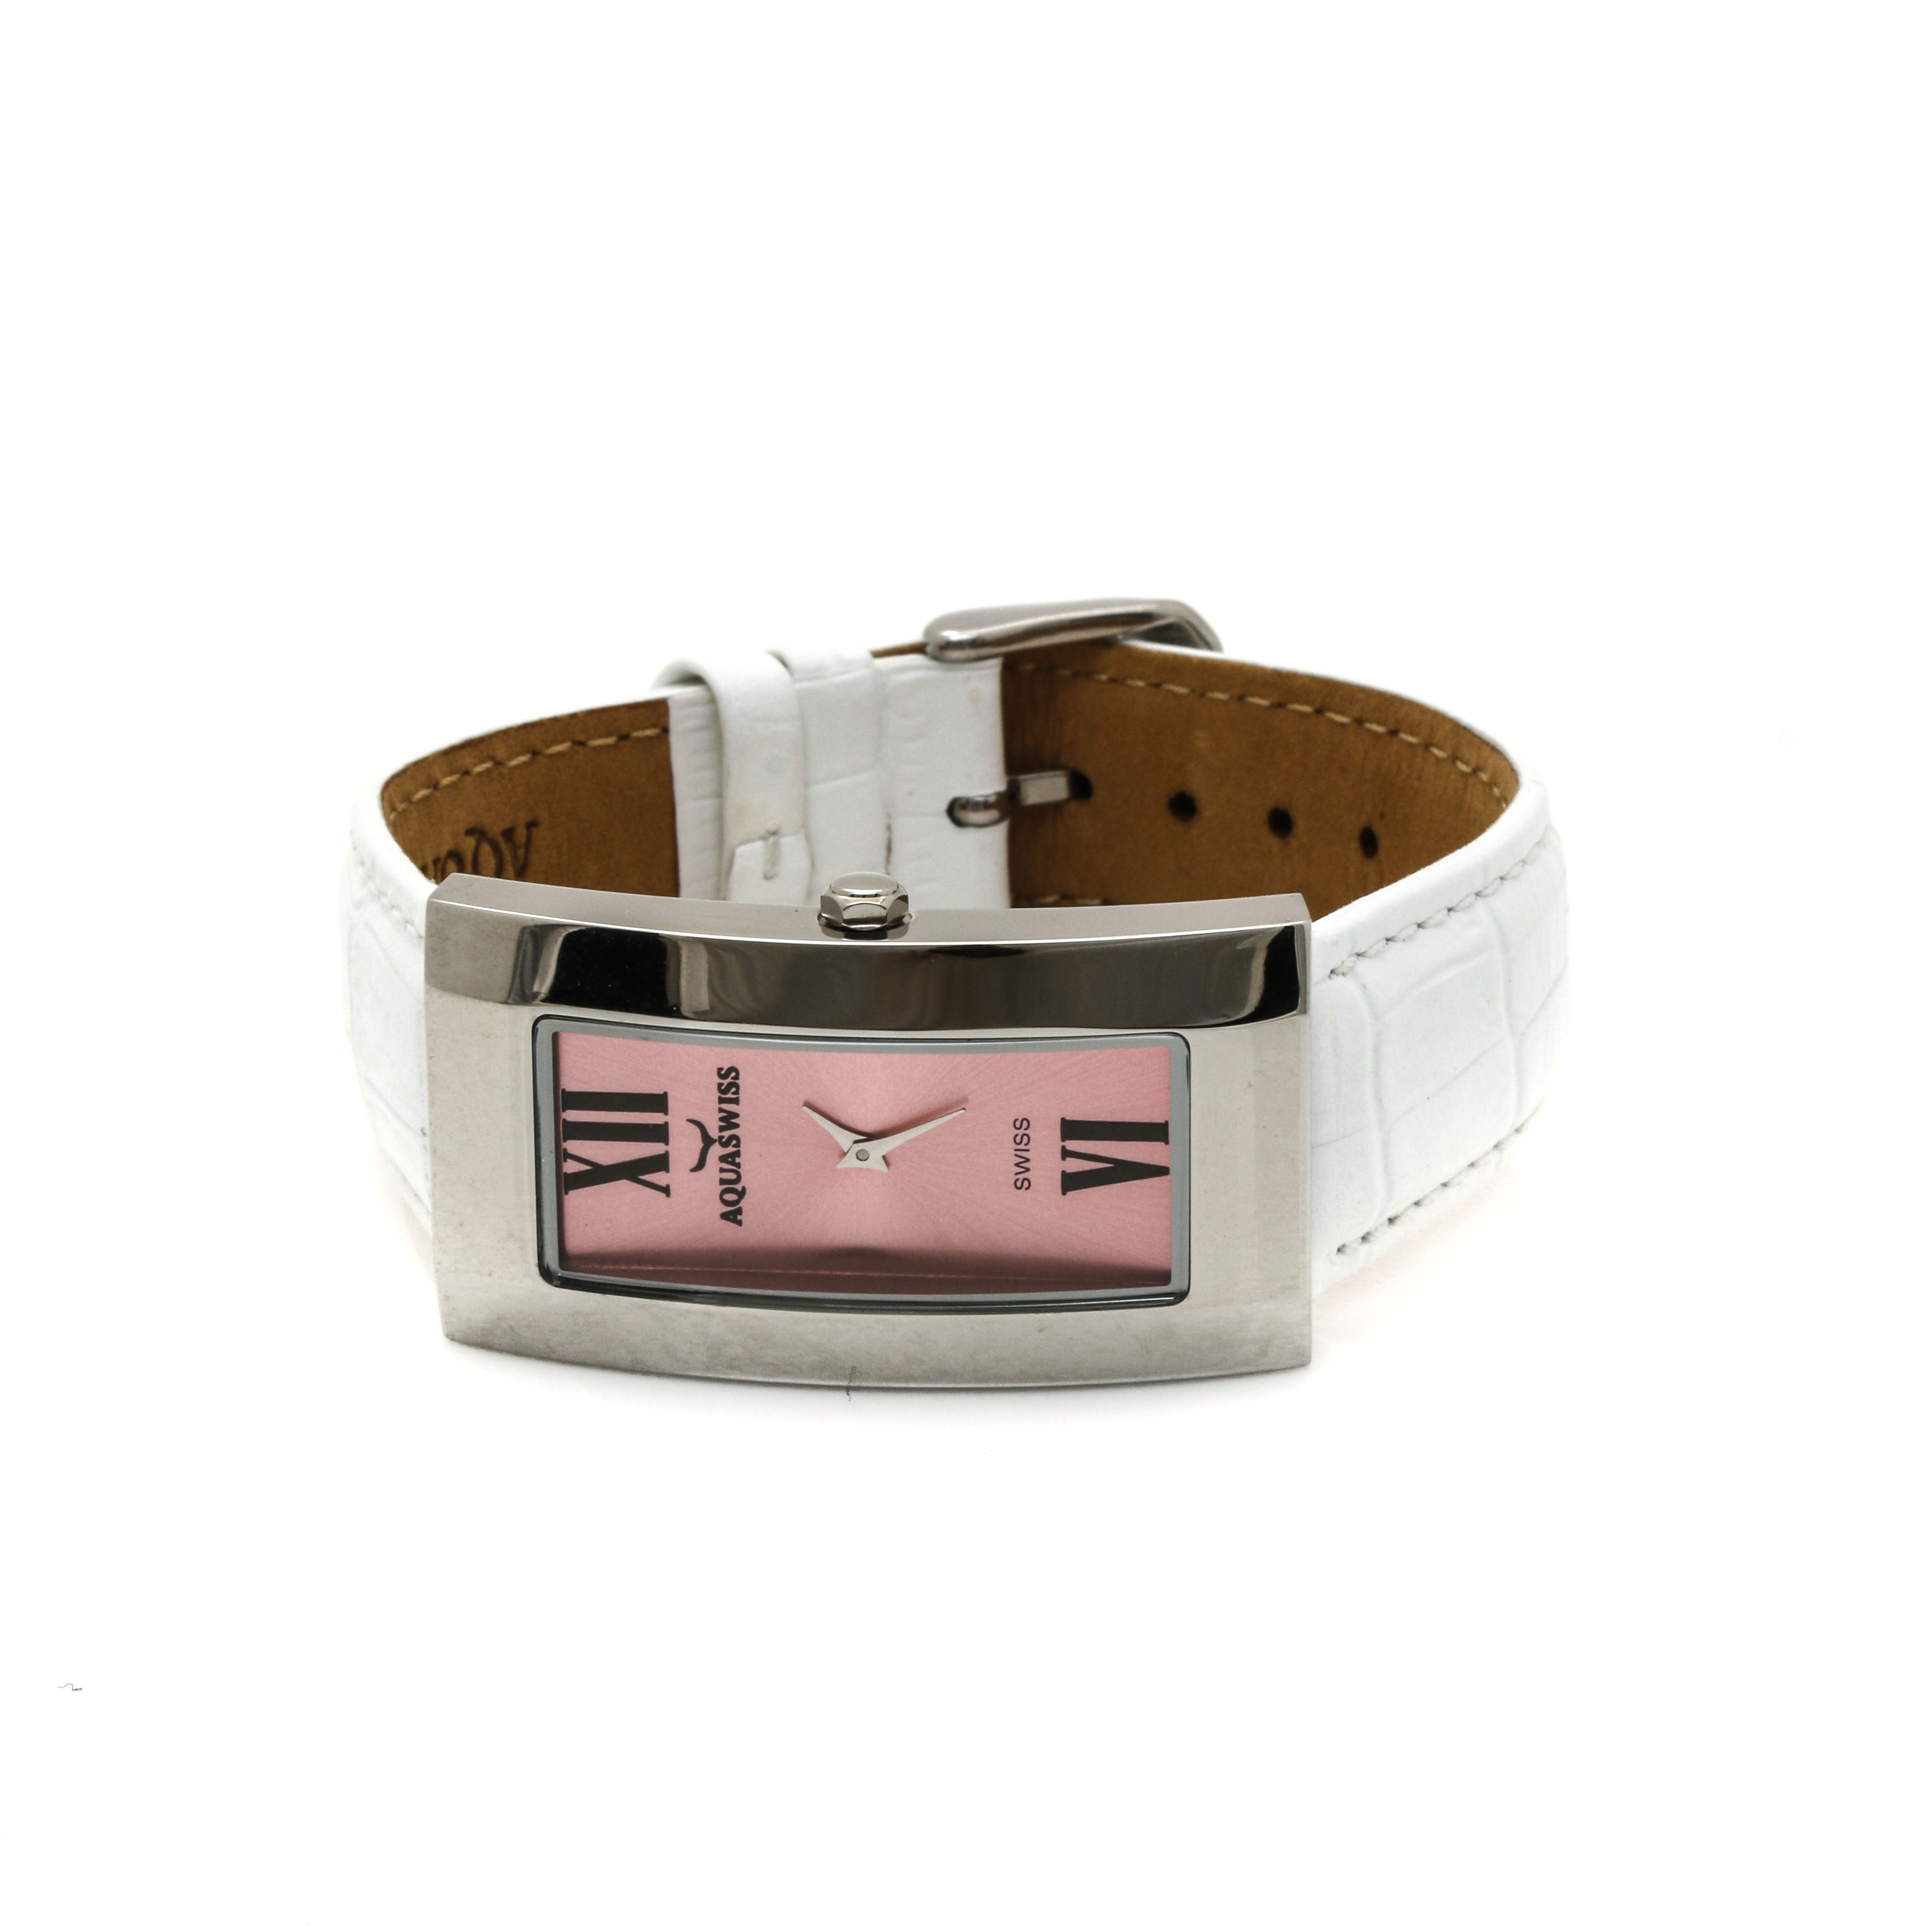 Aquaswiss Stainless Steel Pink Dial and White Leather Strap Watch